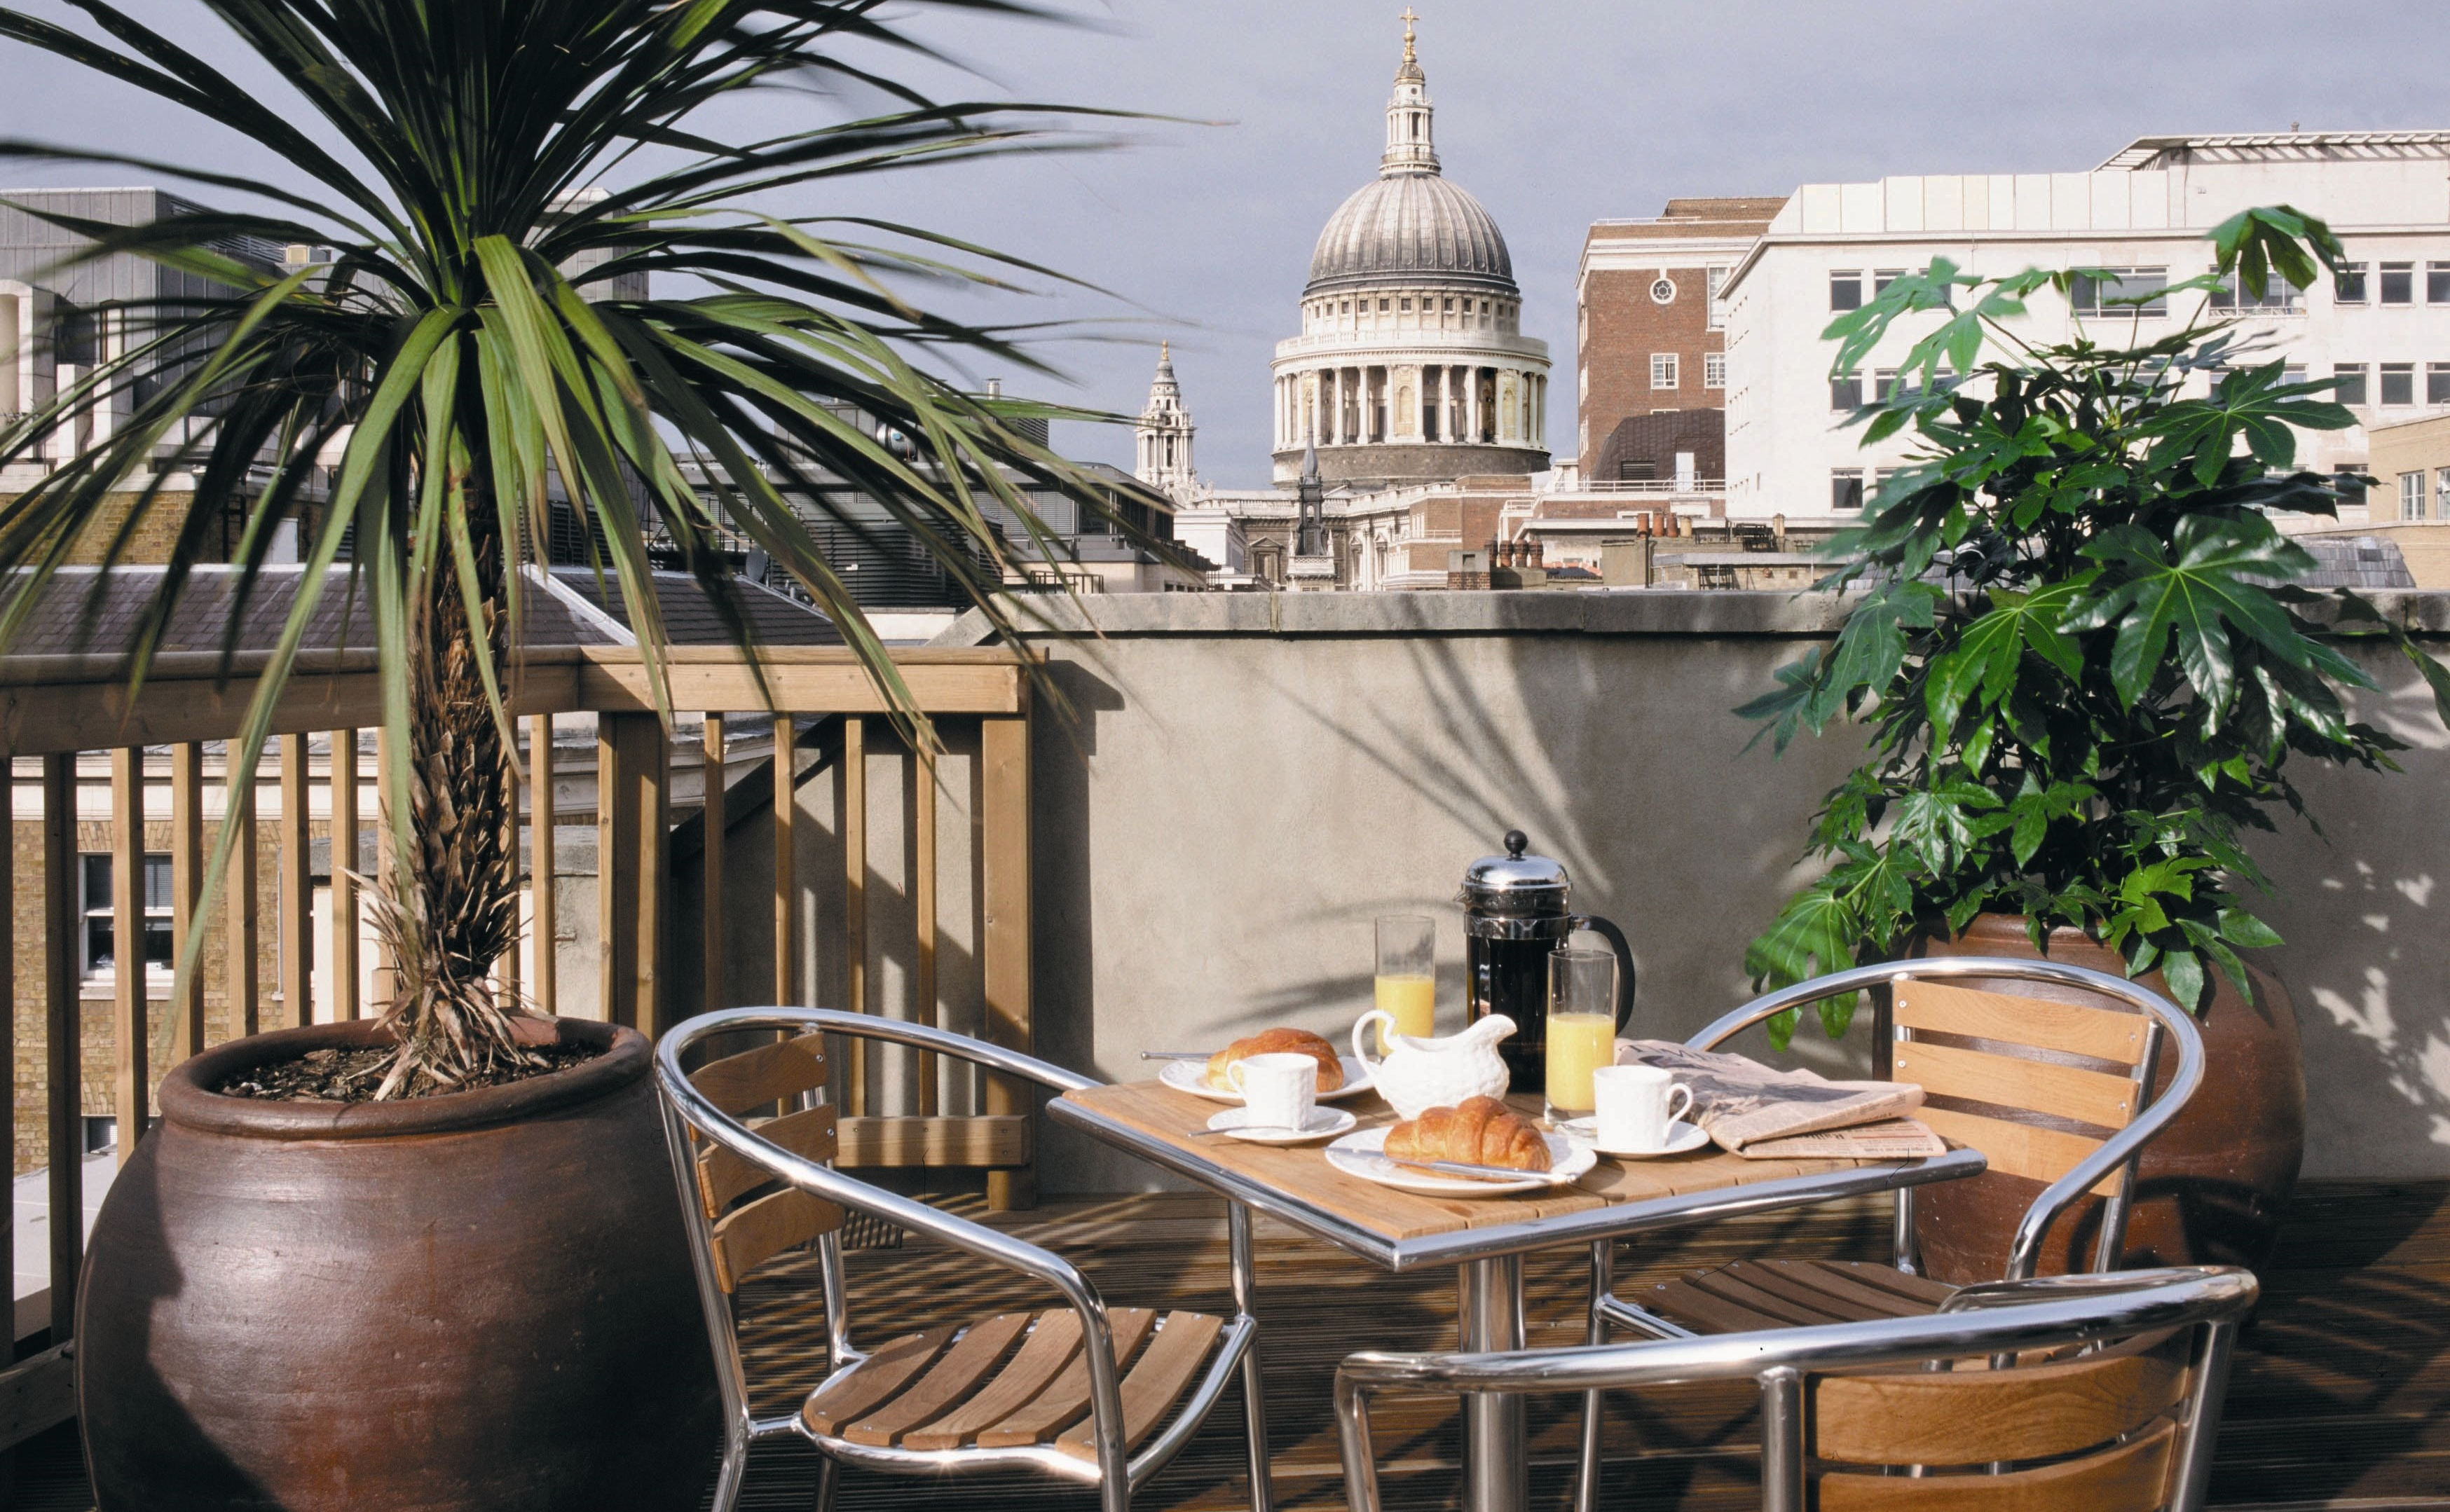 Calico House - roof terrace - IMAGE MUST BE CREDITED TO THE CHVEAL GROUP.jpg